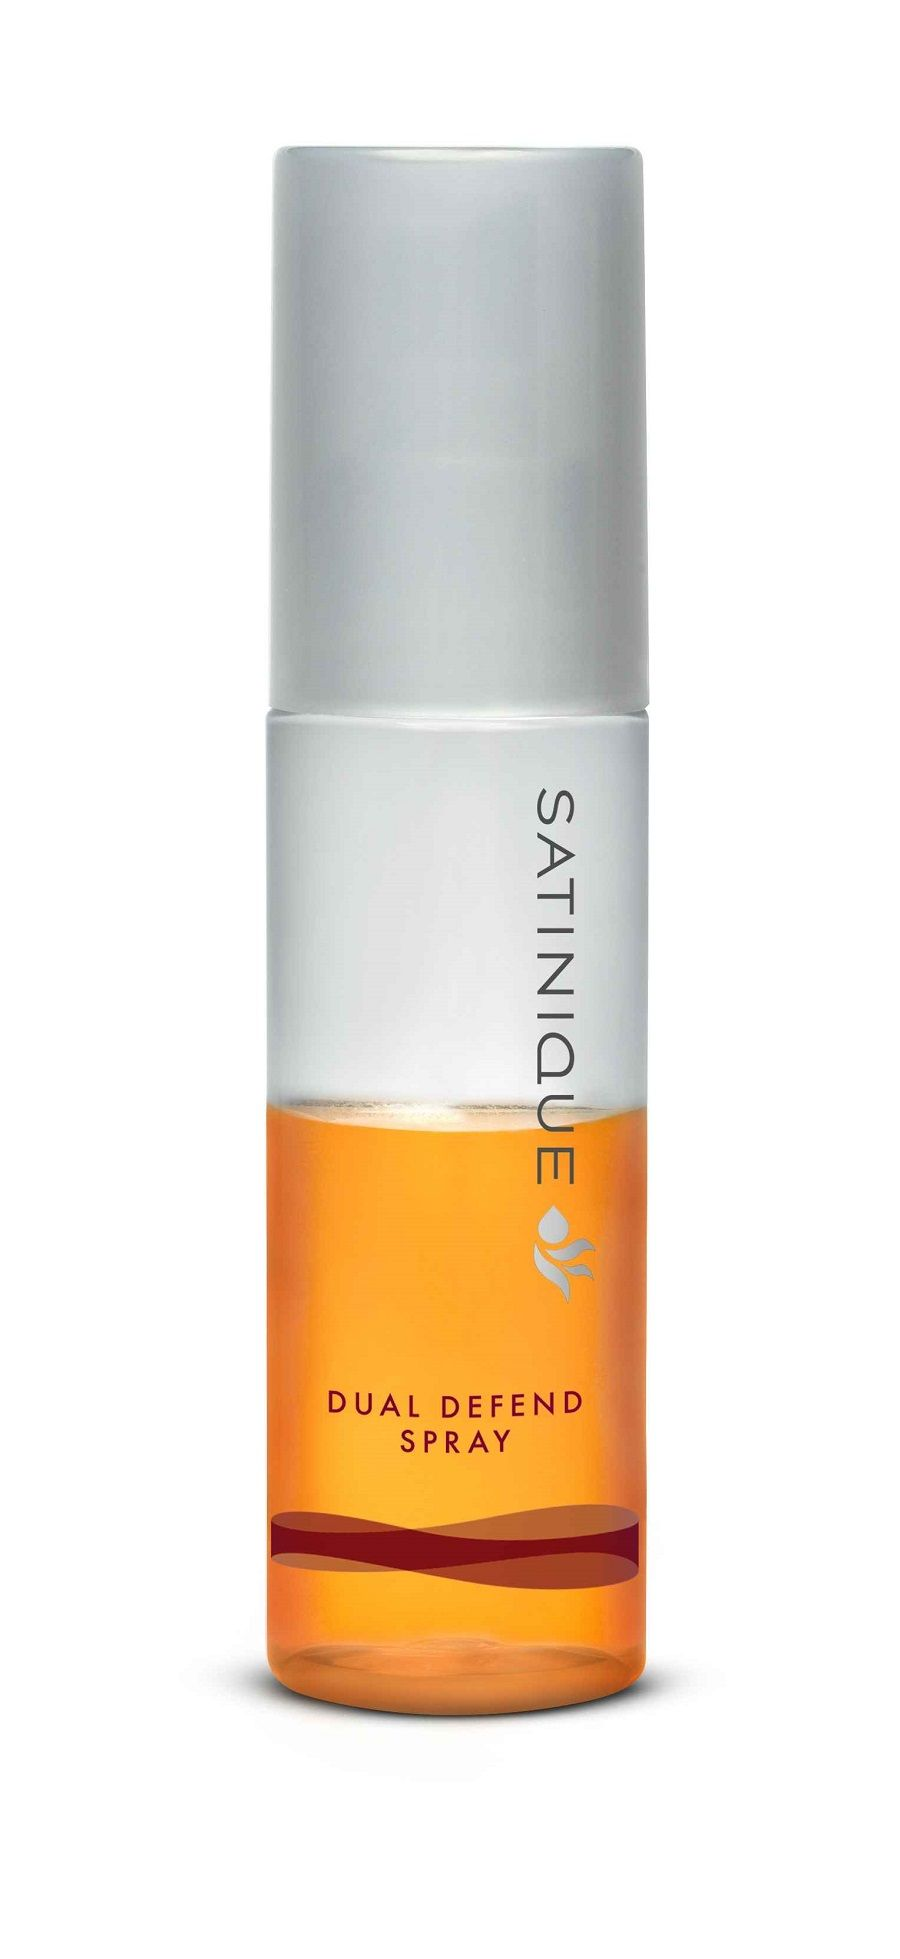 Satinique product shot. Dual Defend Spray